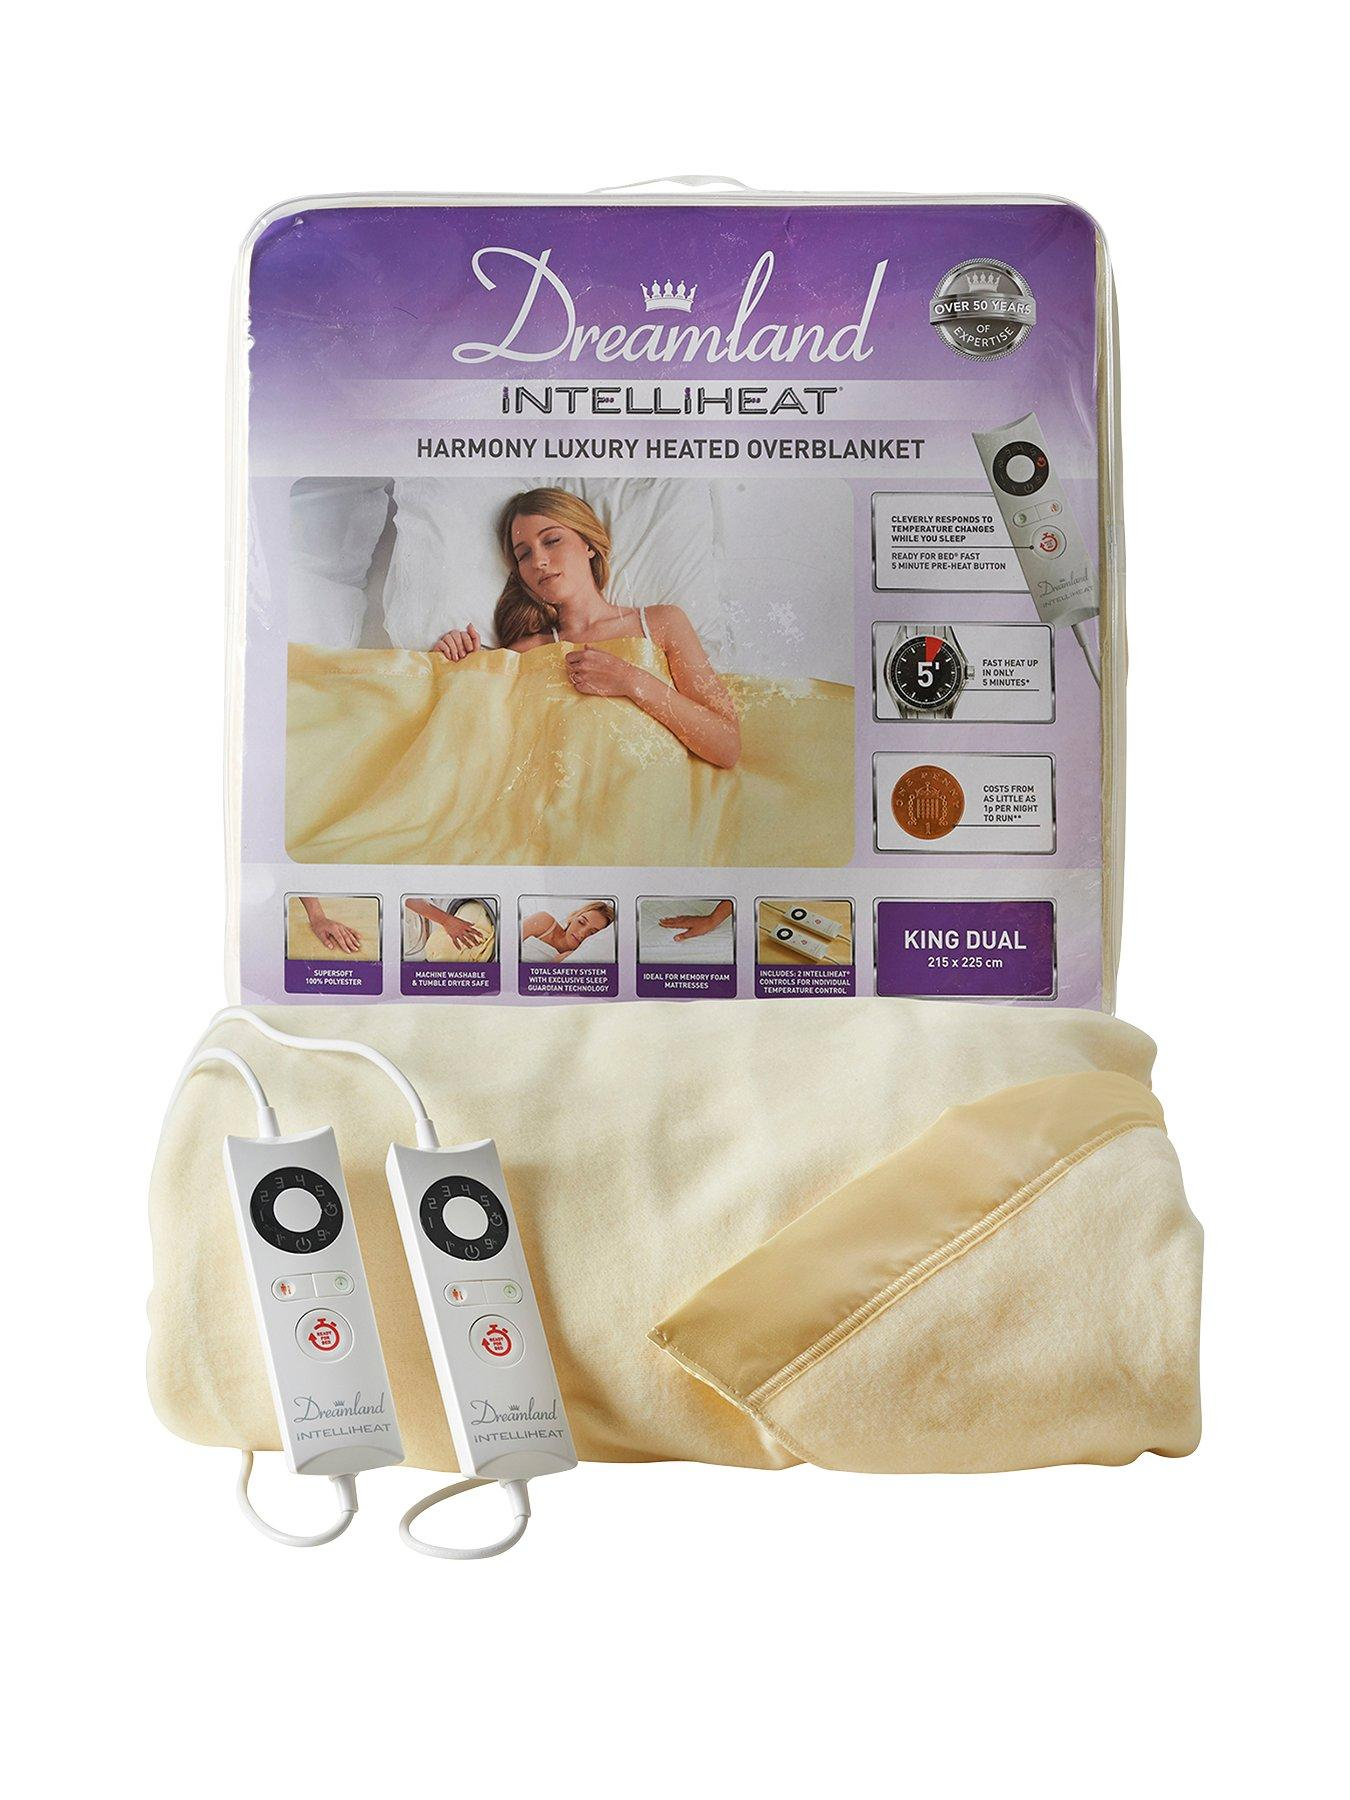 Compare prices for Dreamland Intelliheat Luxury Overblanket